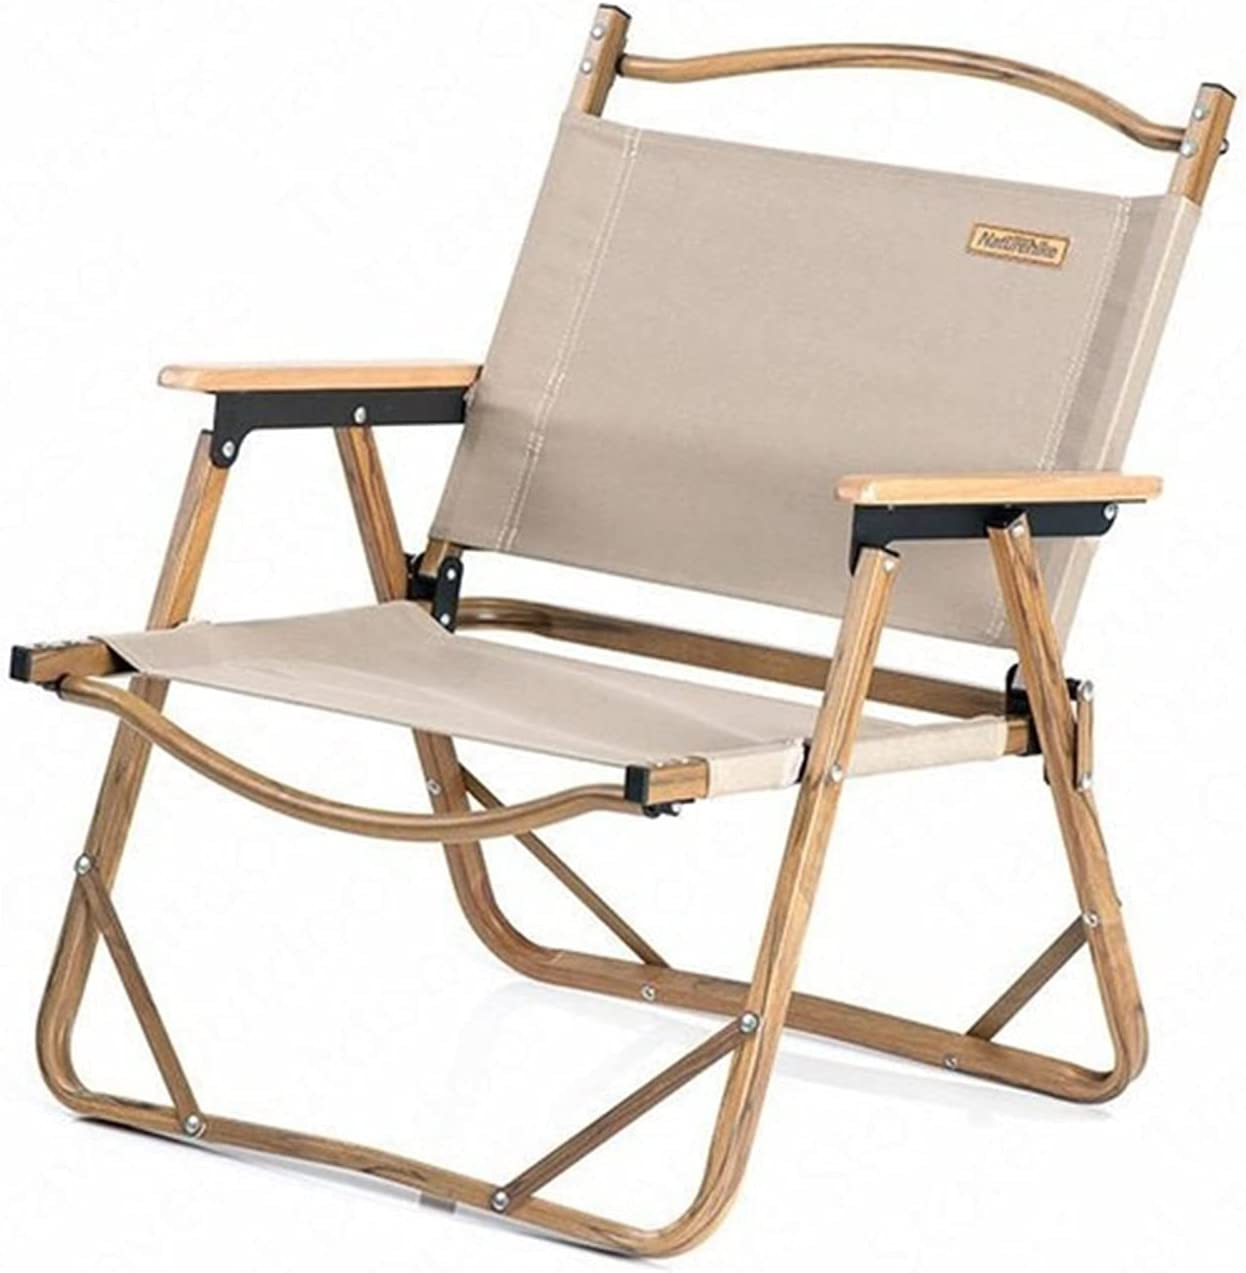 FFYY Camping Chair Outdoor Portable sold out 2Perso Ranking integrated 1st place